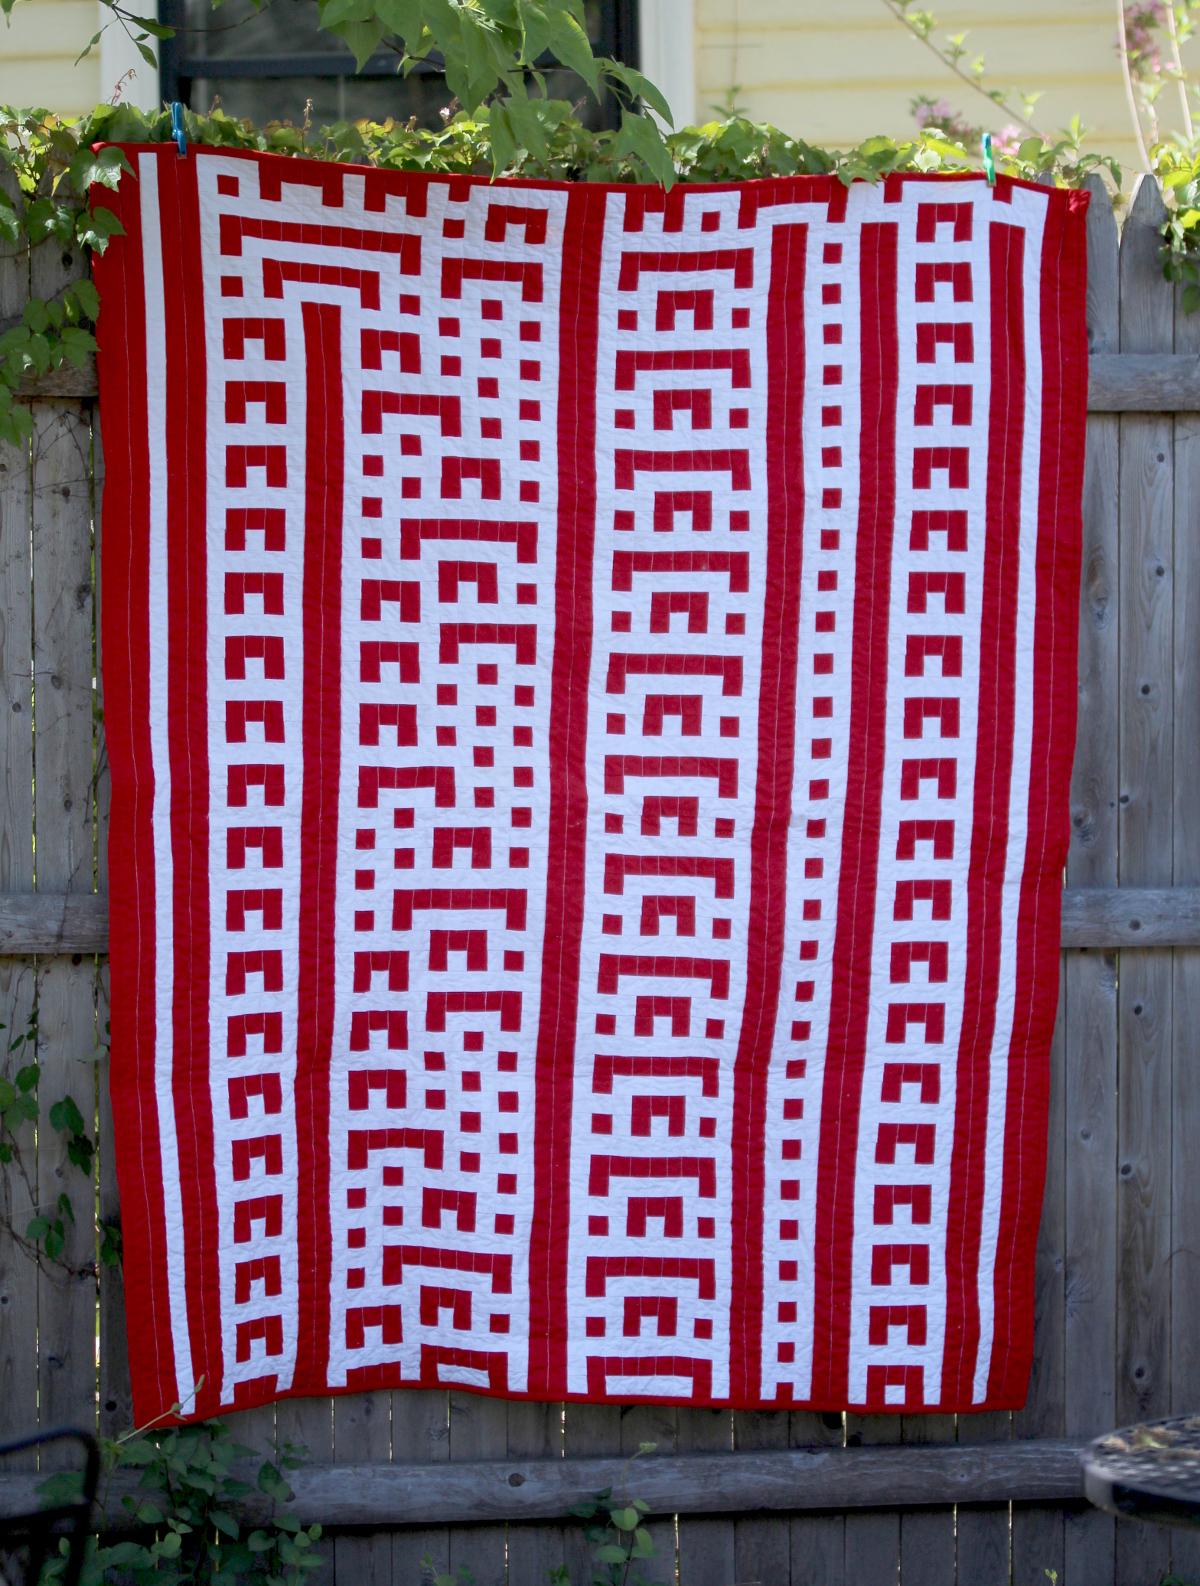 red and white quilt of rule 73 cellular automata pattern